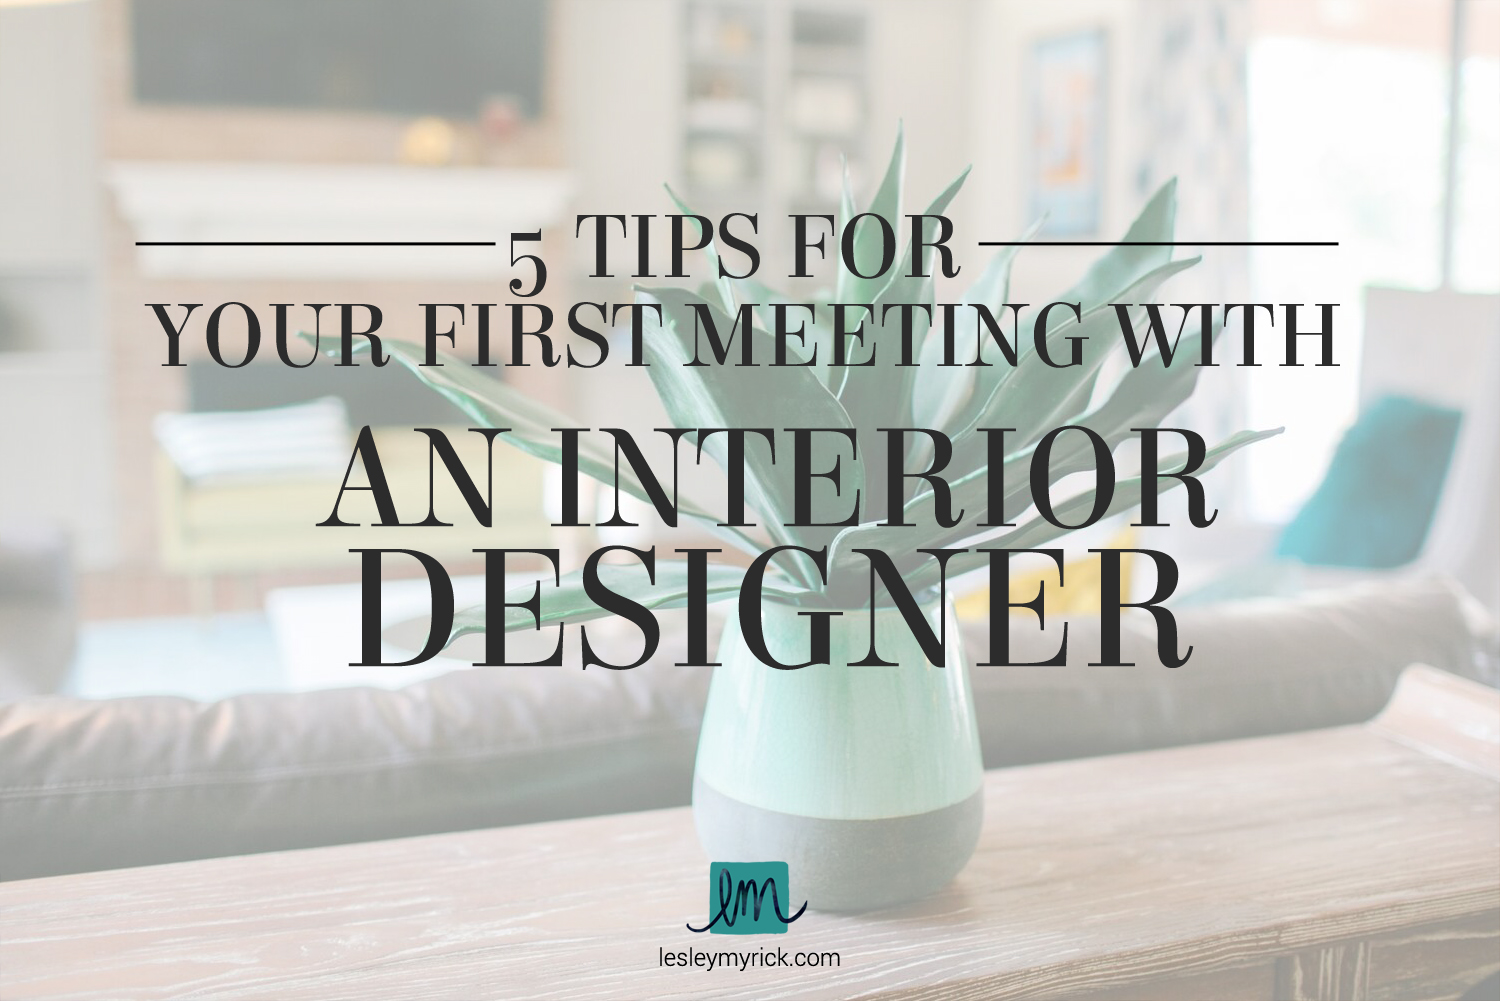 5 tips for your first meeting with an interior designer | Lesley Myrick Art + Design in Waco, Texas